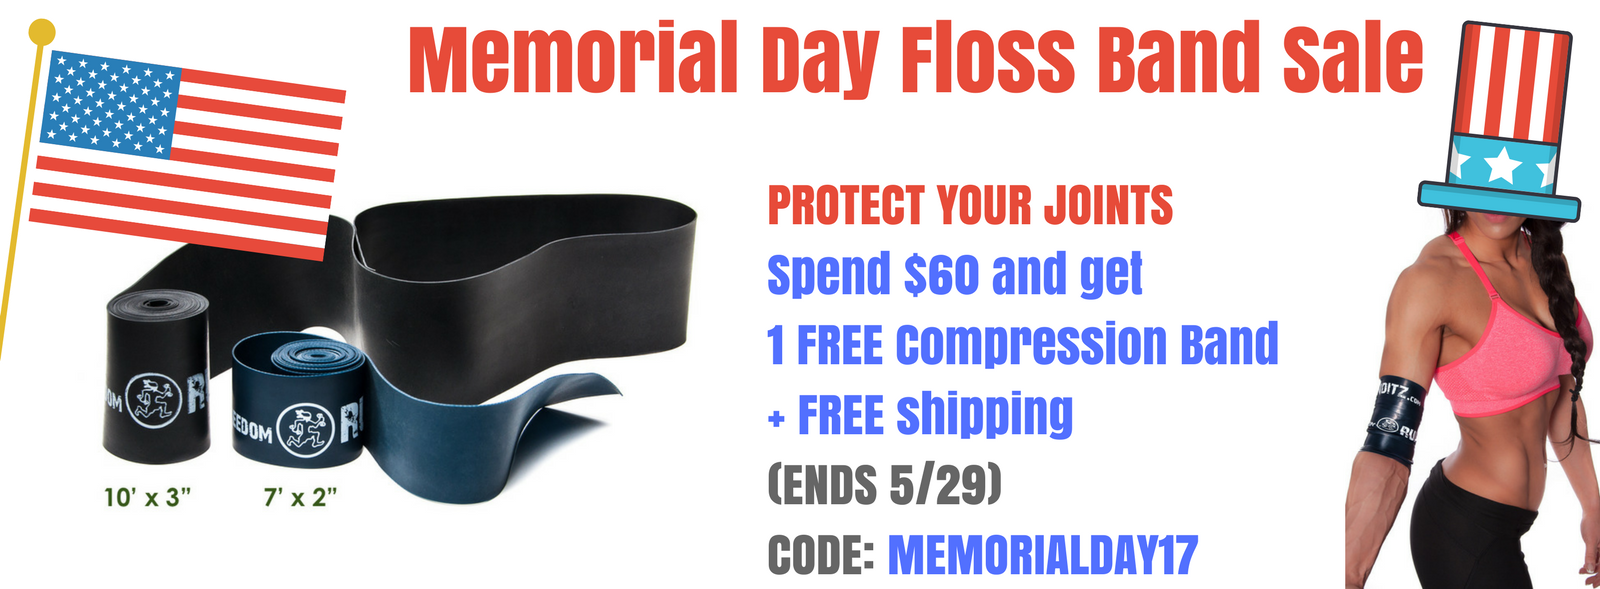 Spend $60 and get a free floss band!